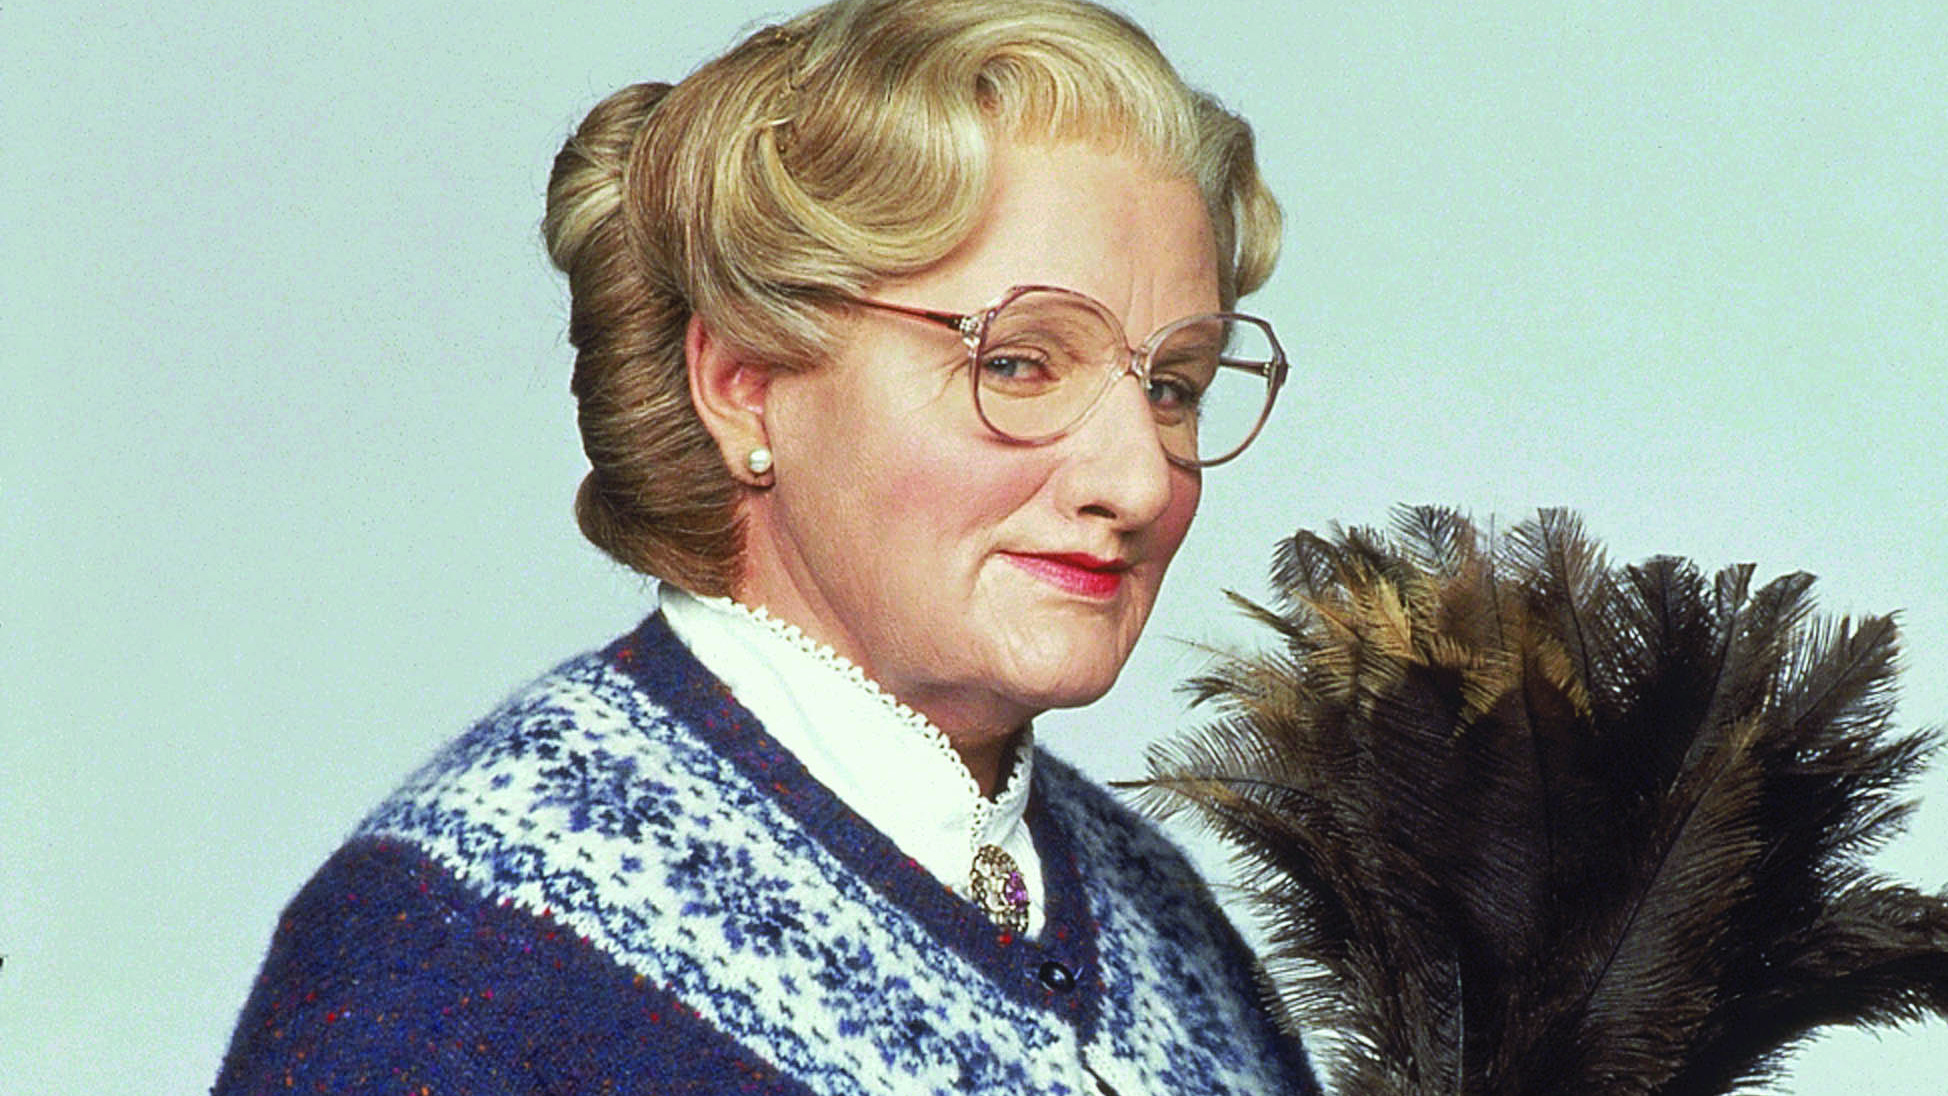 Mrs. Doubtfire is officially coming to Broadway